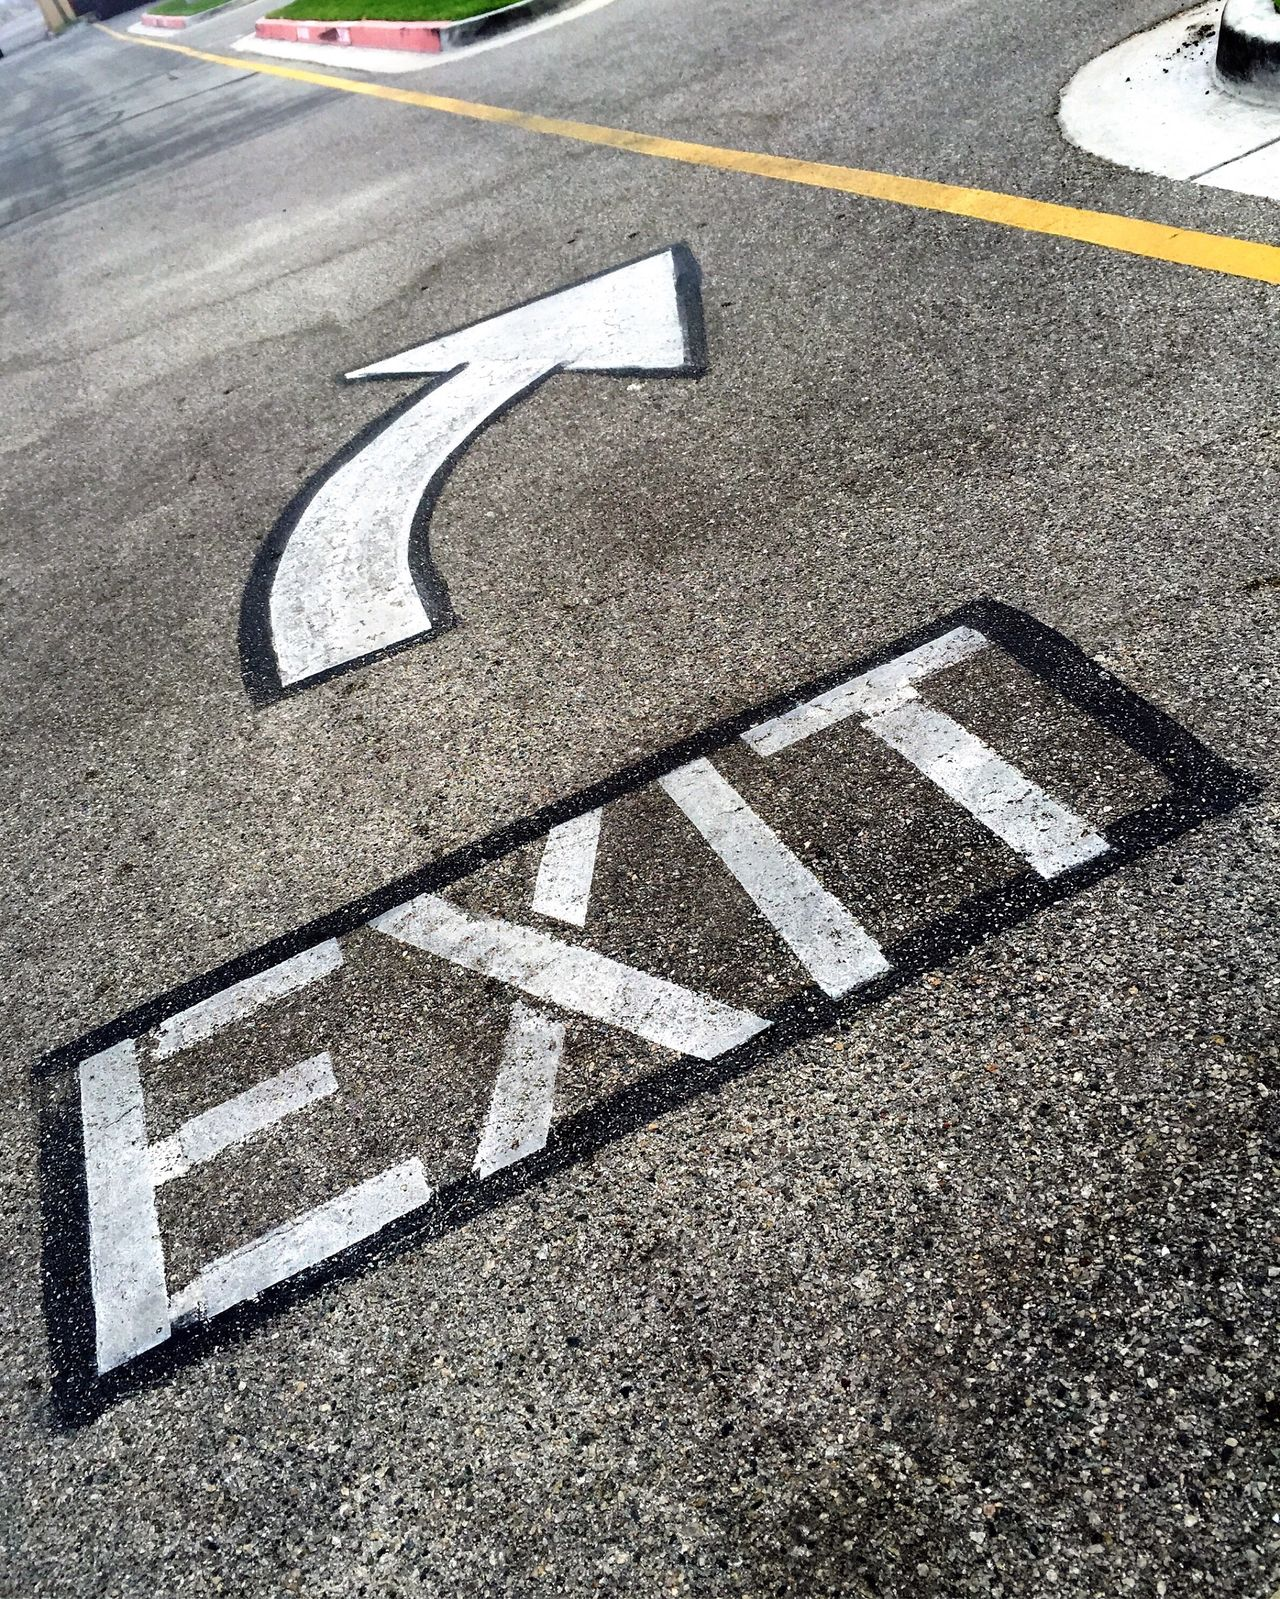 Painted exit sign and arrow on the street pavement Arrow Arrow Sign Arrows Asphalt Asphalt Communication Direction Directional Sign Directions Exit Exit Sign No People Out Outdoors Painted Arrow Painted Sign Pavement Road Road Sign Road Signs Street Street Sign Street Signs This Way This Way Out